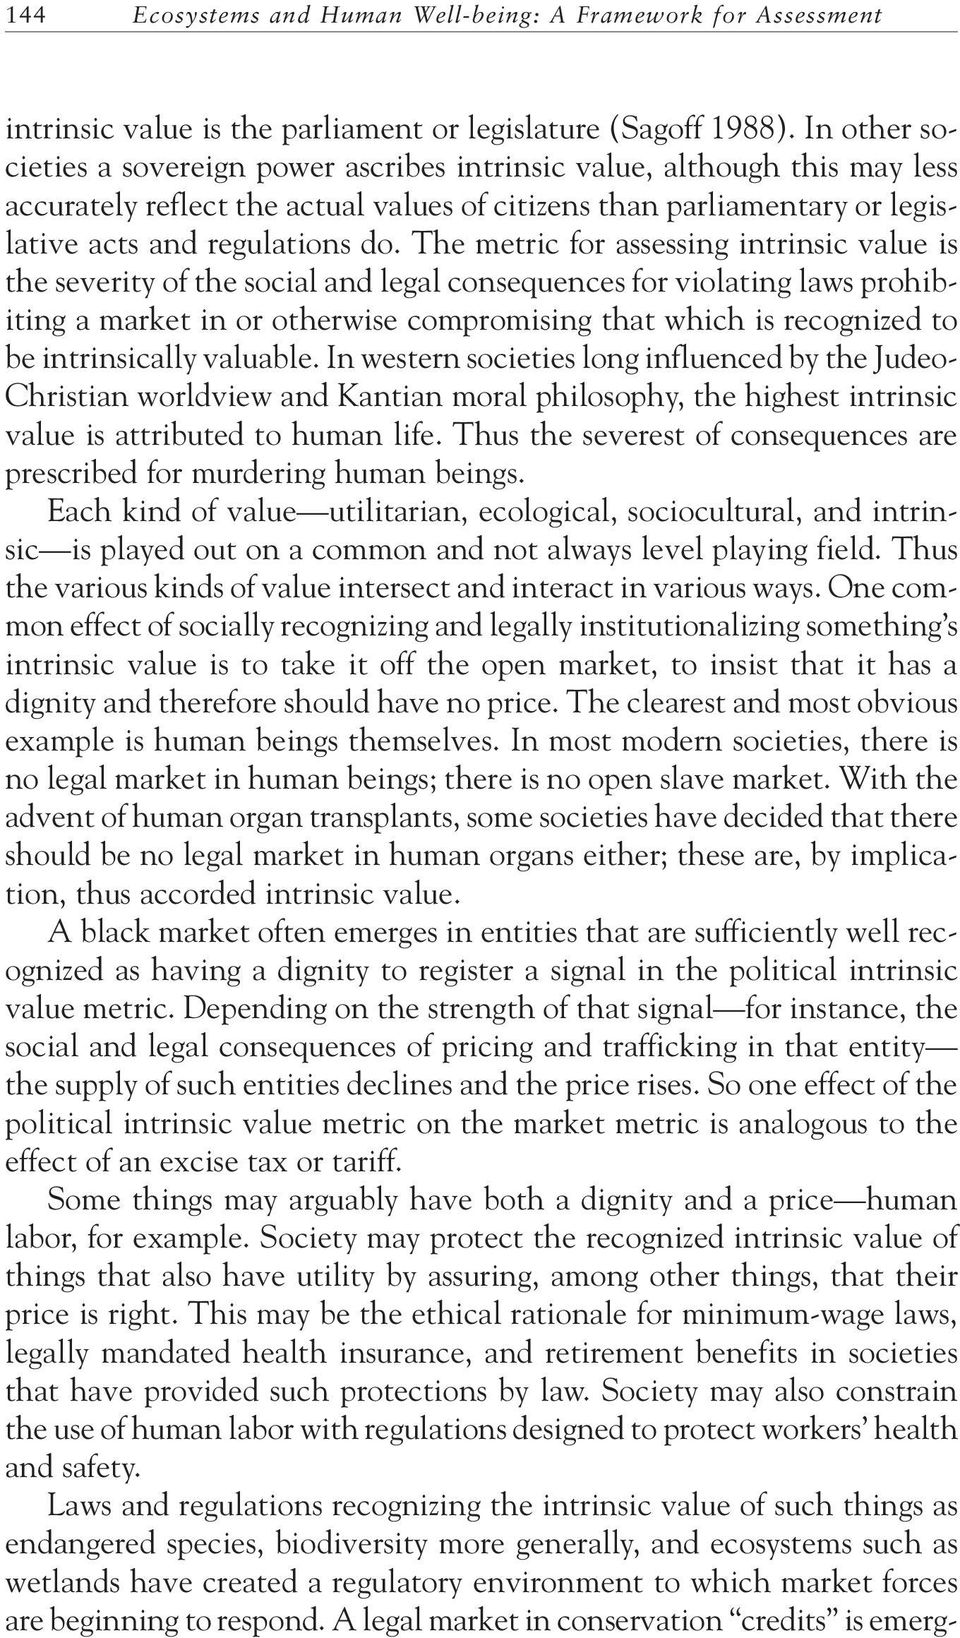 The metric for assessing intrinsic value is the severity of the social and legal consequences for violating laws prohibiting a market in or otherwise compromising that which is recognized to be